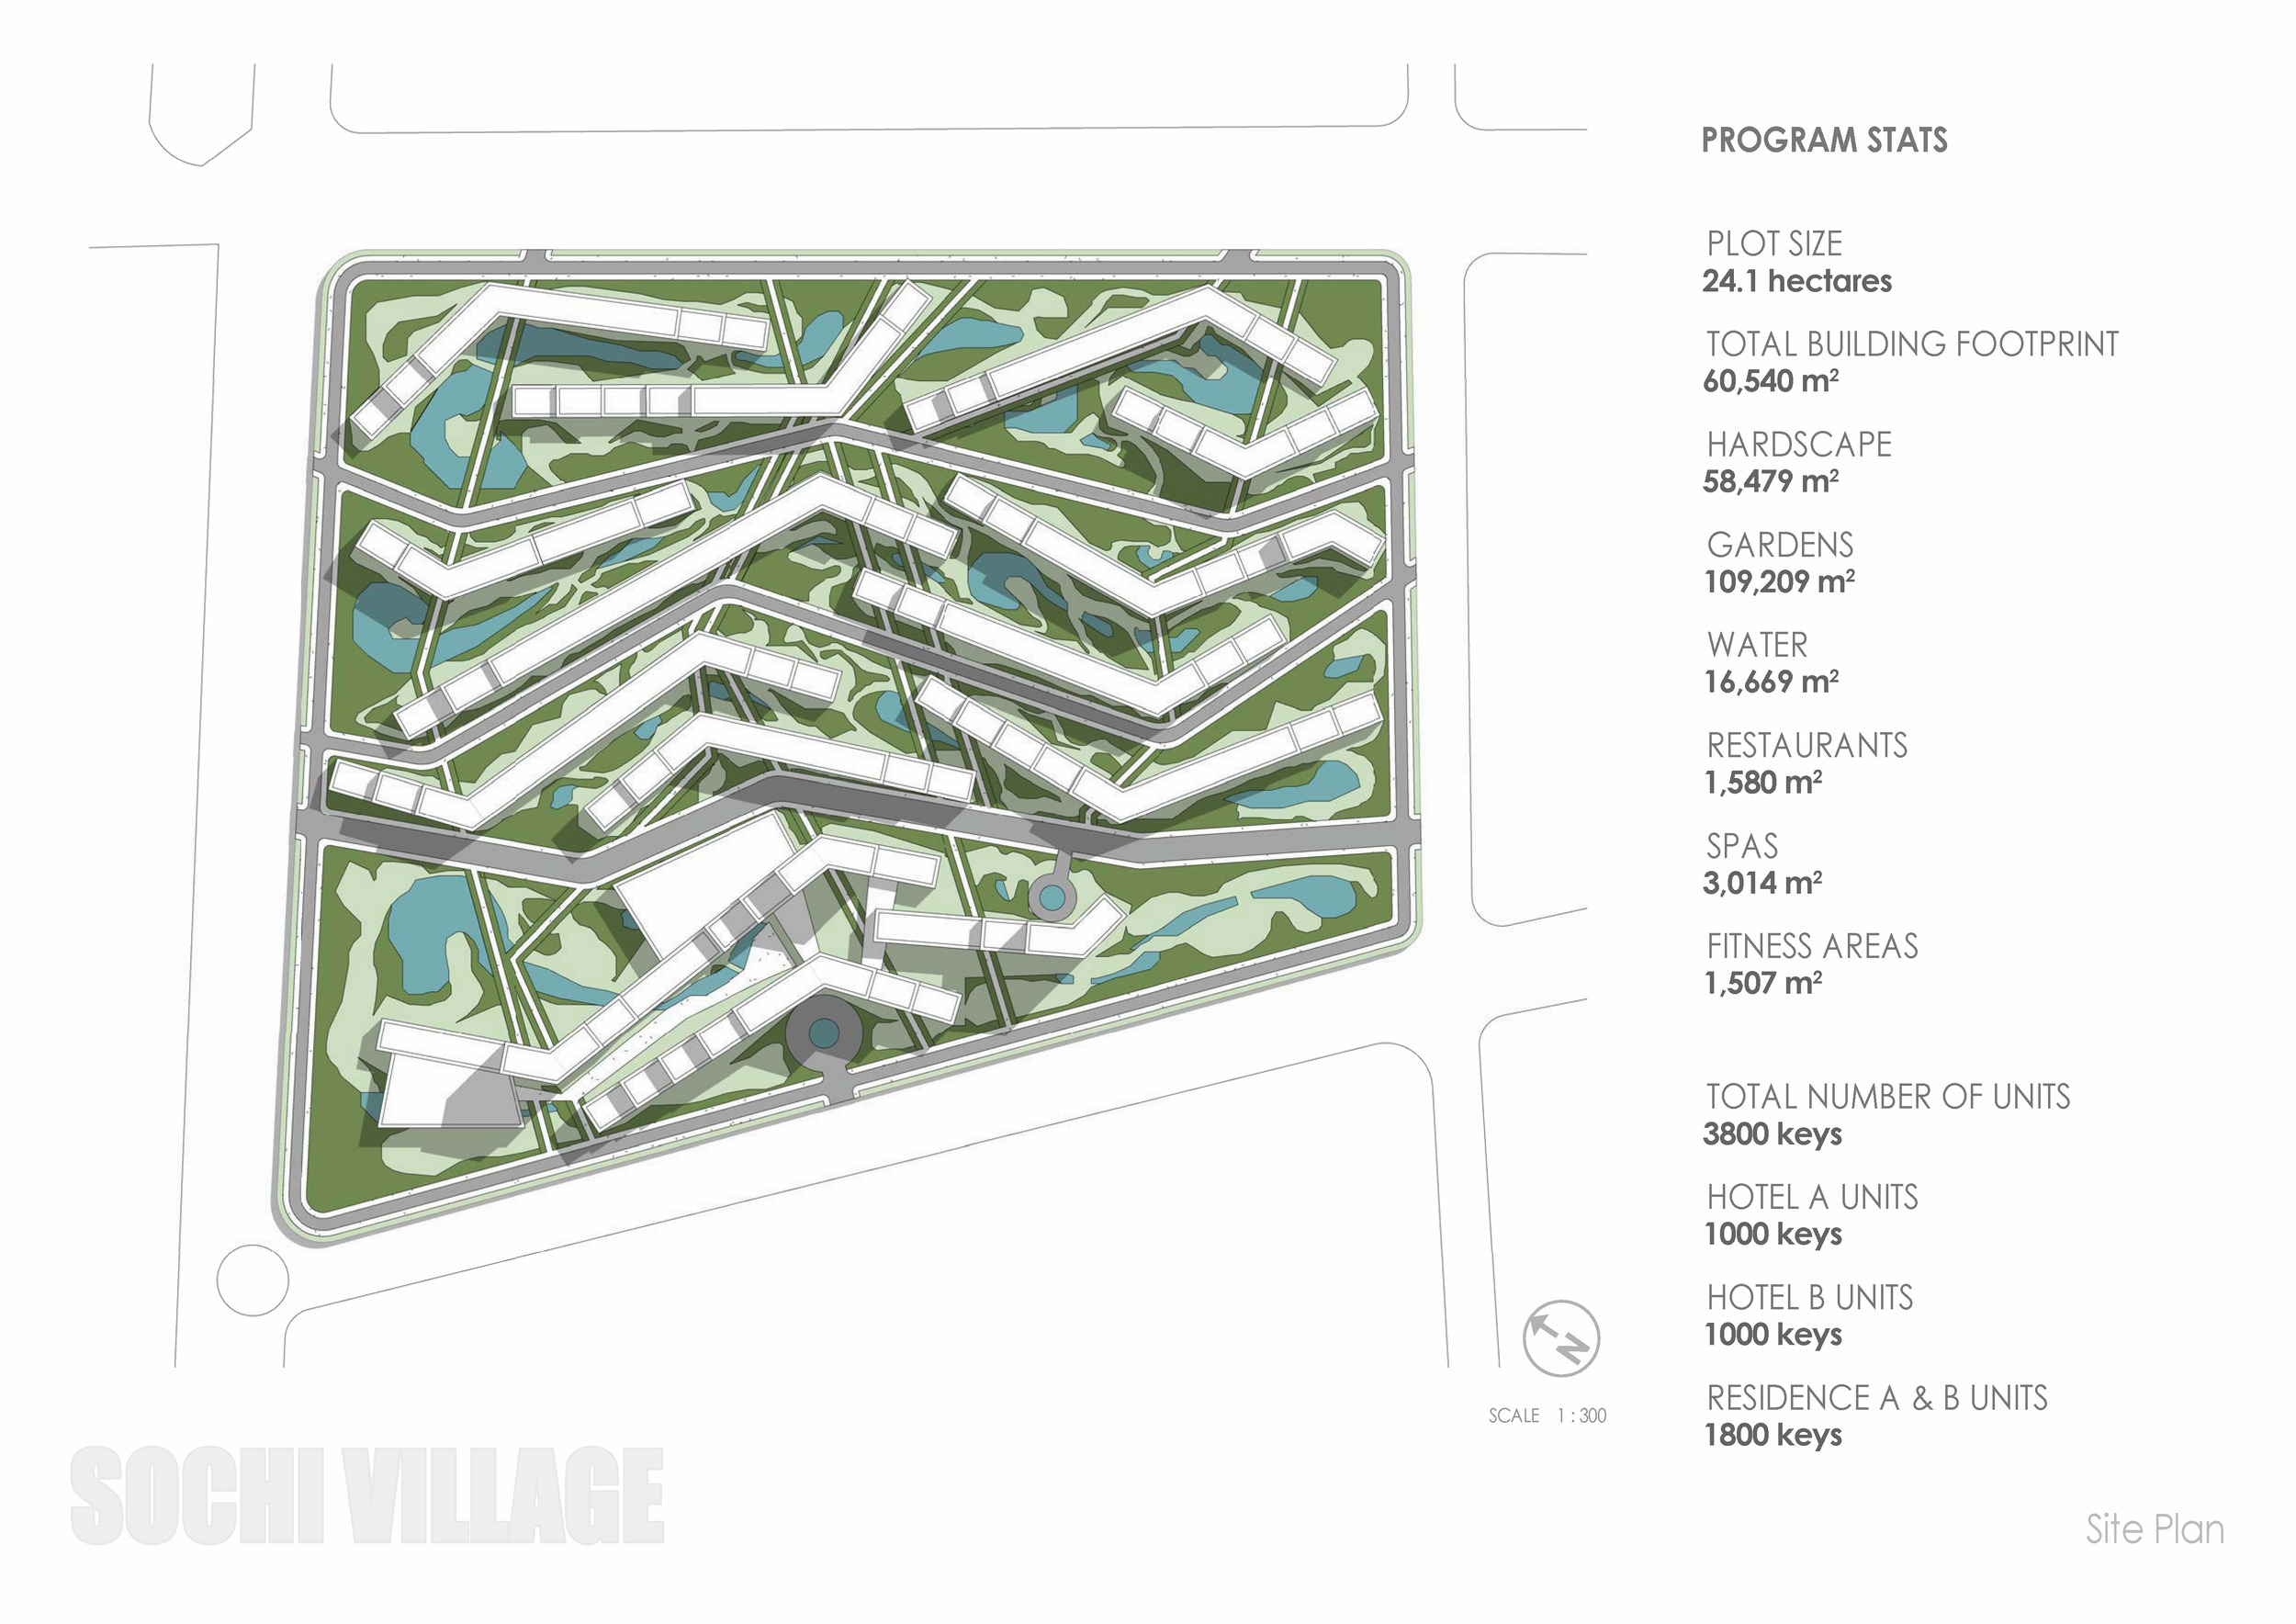 Sochi Olympic Village Site Plan